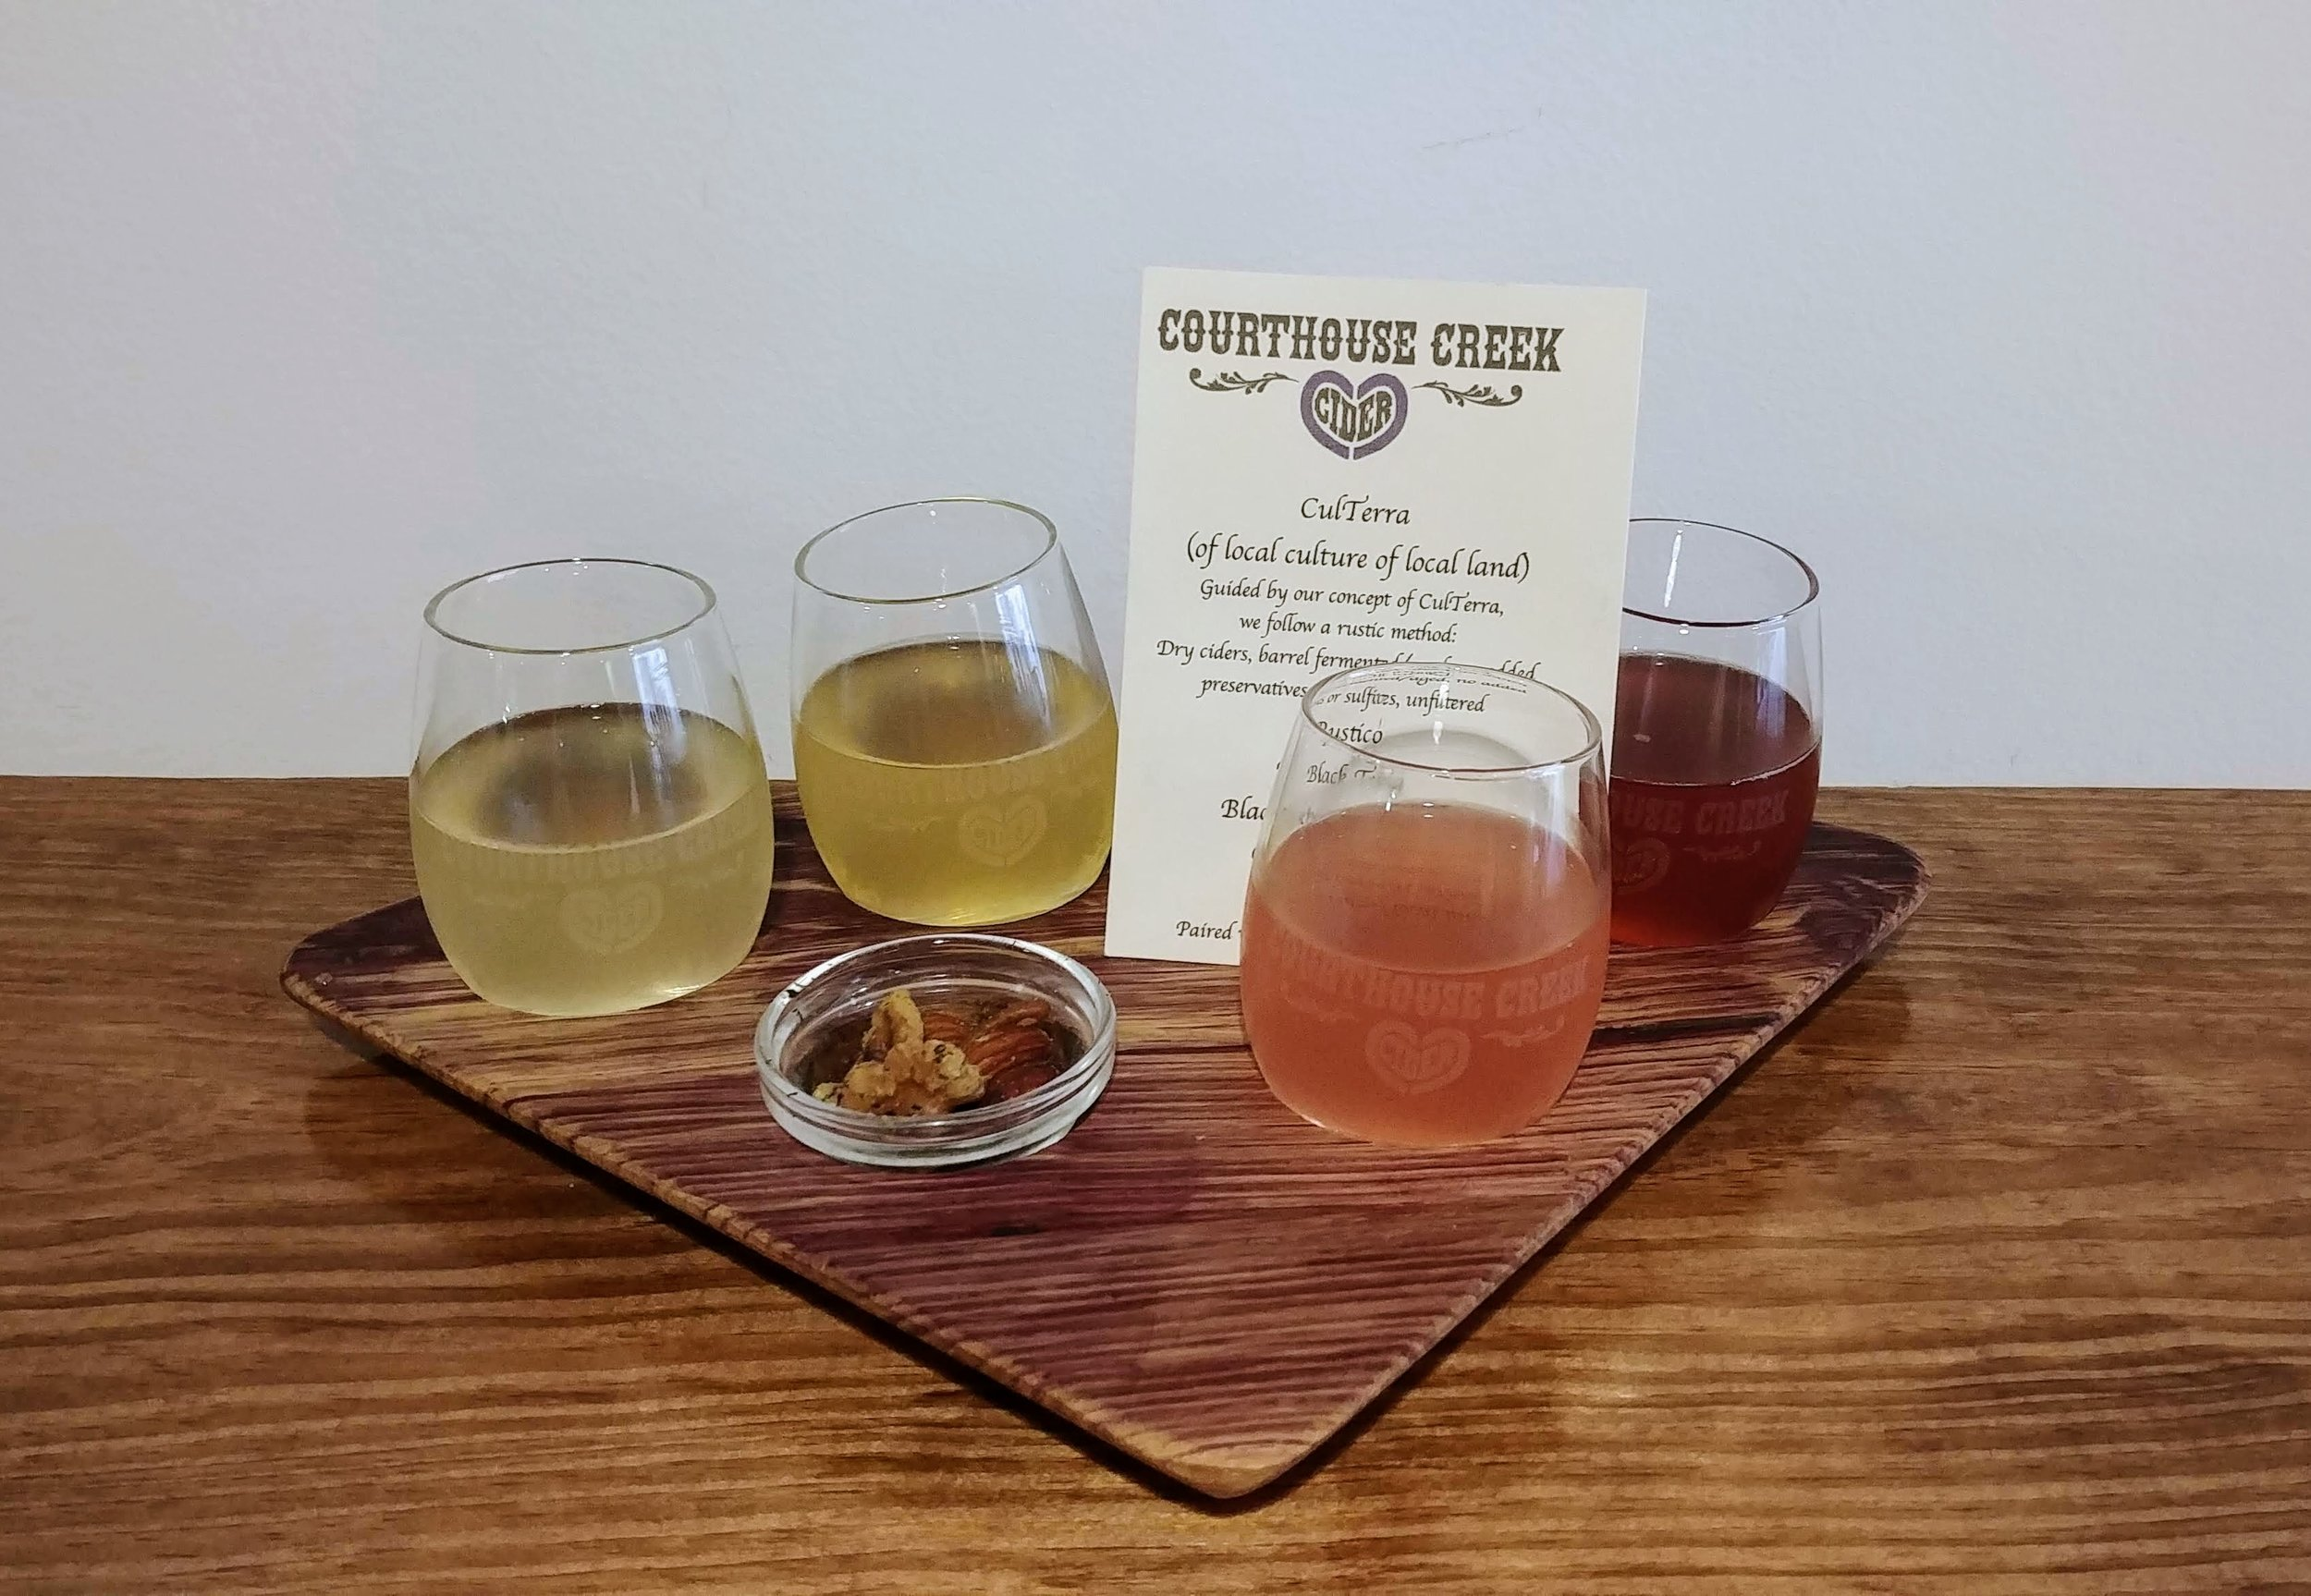 A flight of ciders at Courthouse Creek's tasting room.